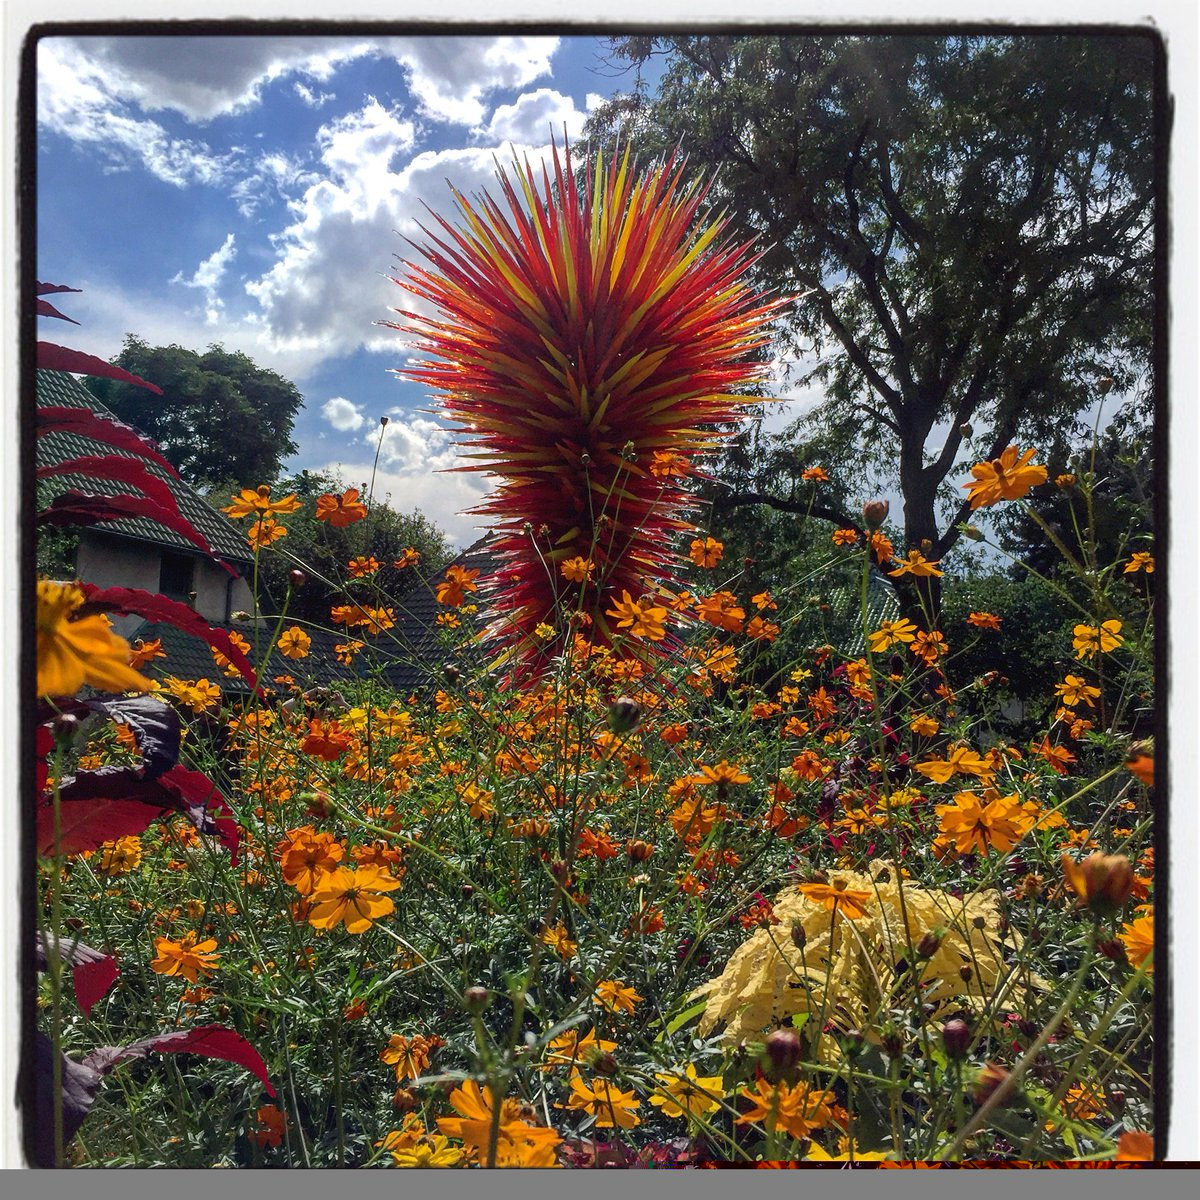 delighted to discover the art of both #calder and #chihuly on my first visit to denver @botanic gardens<br>http://pic.twitter.com/MCYPia5aEb